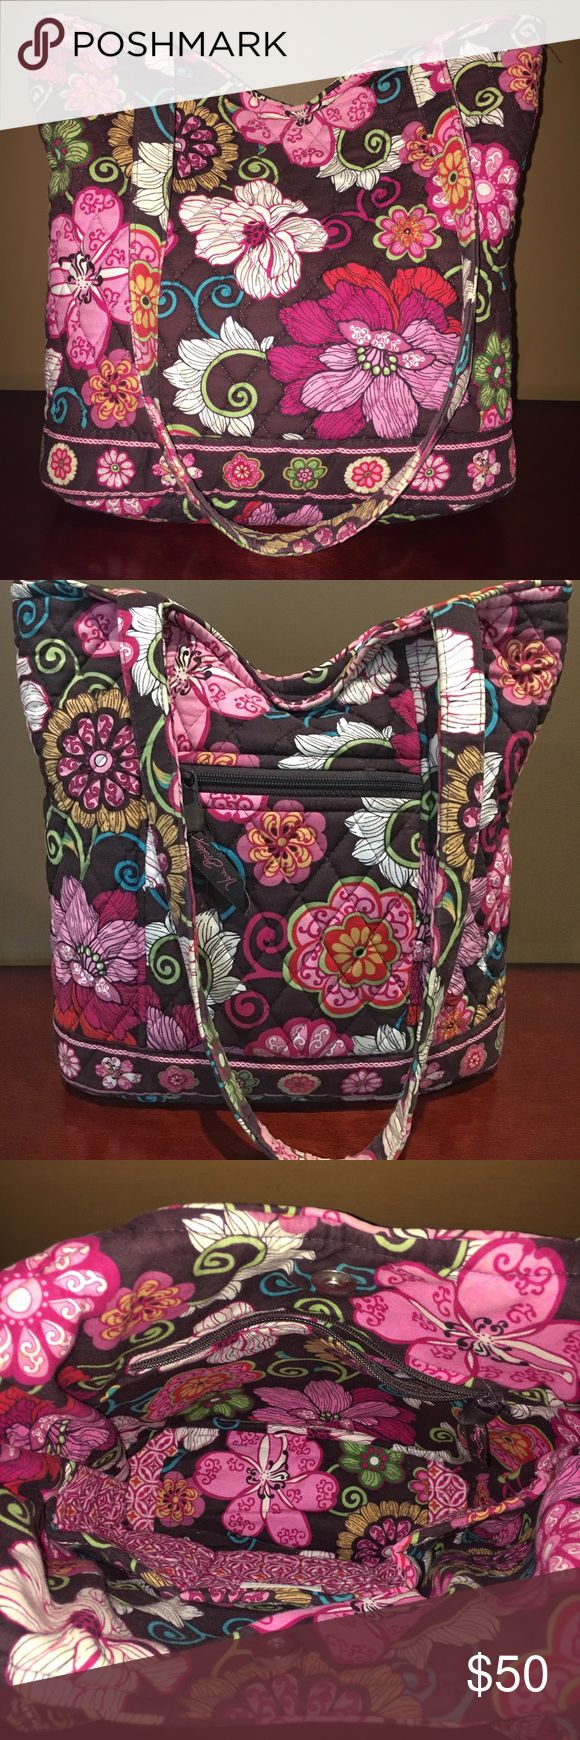 SALE!! Vera Bradley Mod Floral Pink Bucket Tote Retired mod floral pink pattern Vera Bradley bucket tote in excellent condition! Tote has magnetic closure and outside zippered pocket. Inside has large zippered pocket, 3 open slip pockets, and lots of space for your belongings! Vera Bradley Bags Totes